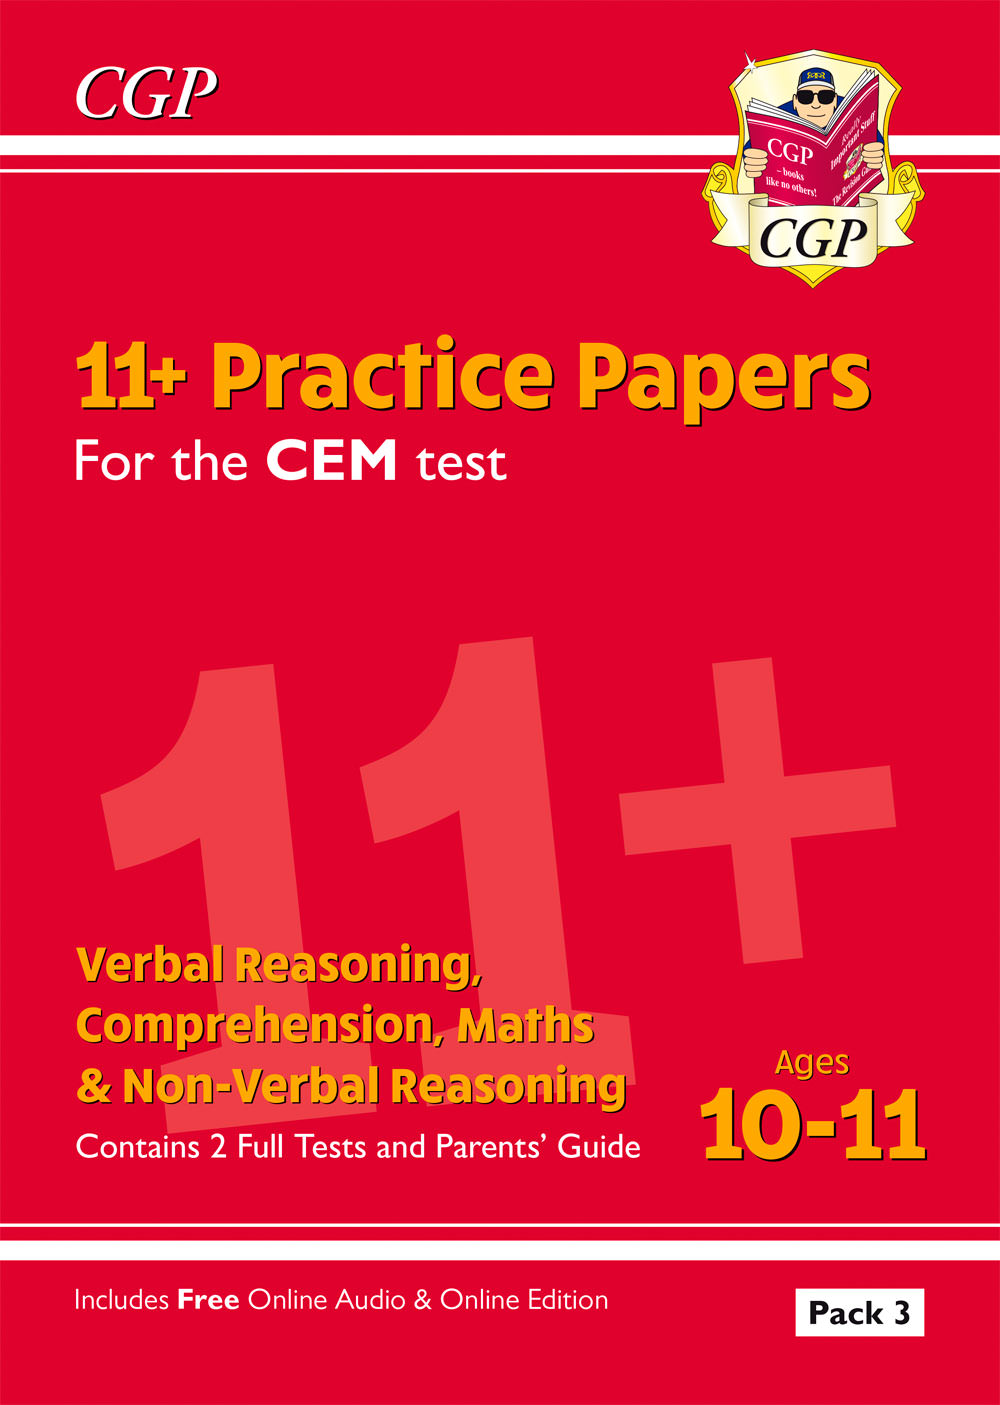 ELP3DE2 - New 11+ CEM Practice Papers: Ages 10-11 - Pack 3 (with Parents' Guide & Online Edition)